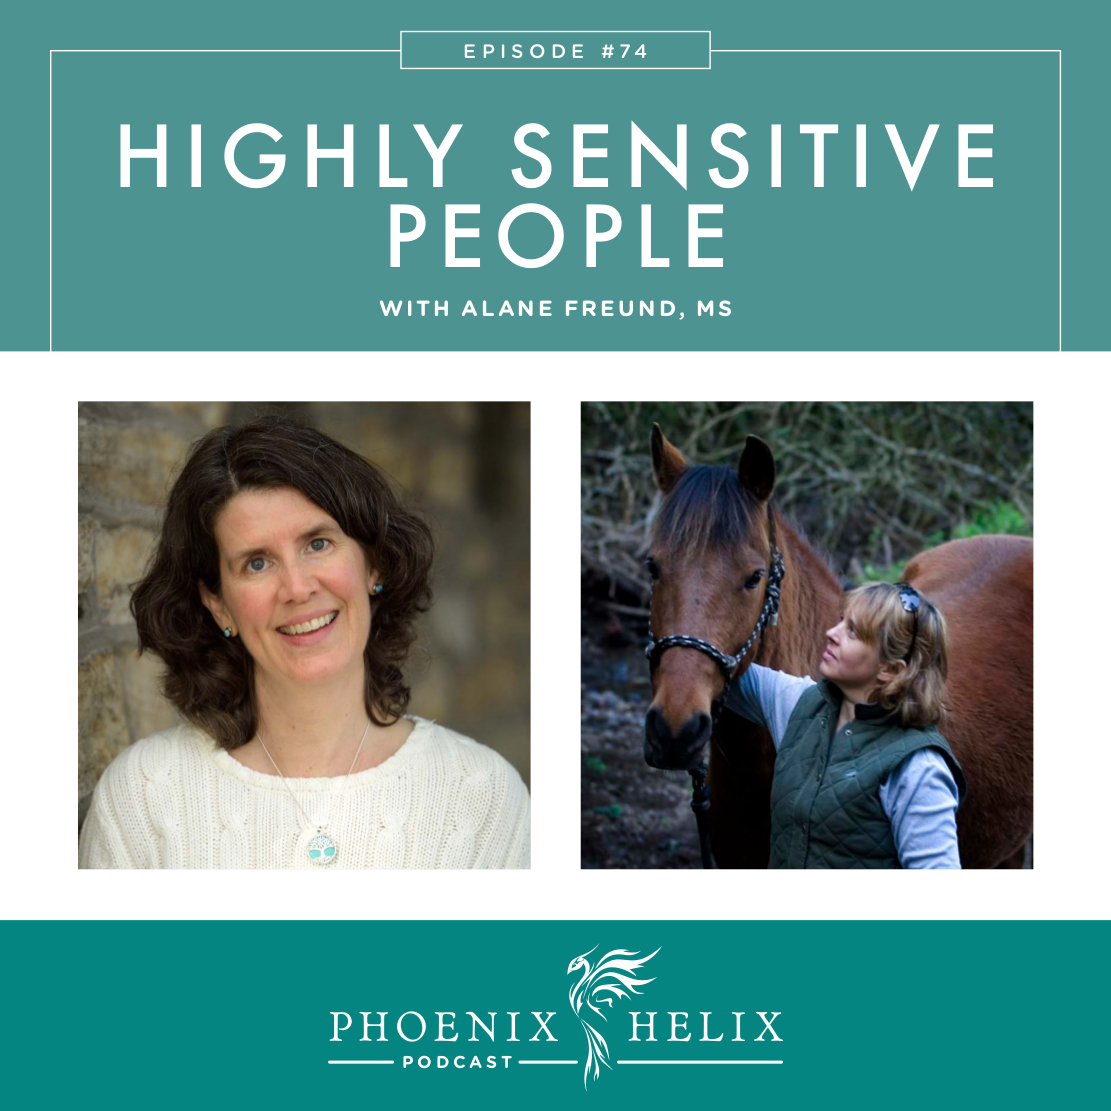 Highly Sensitive People with Alane Freund | Phoenix Helix Podcast